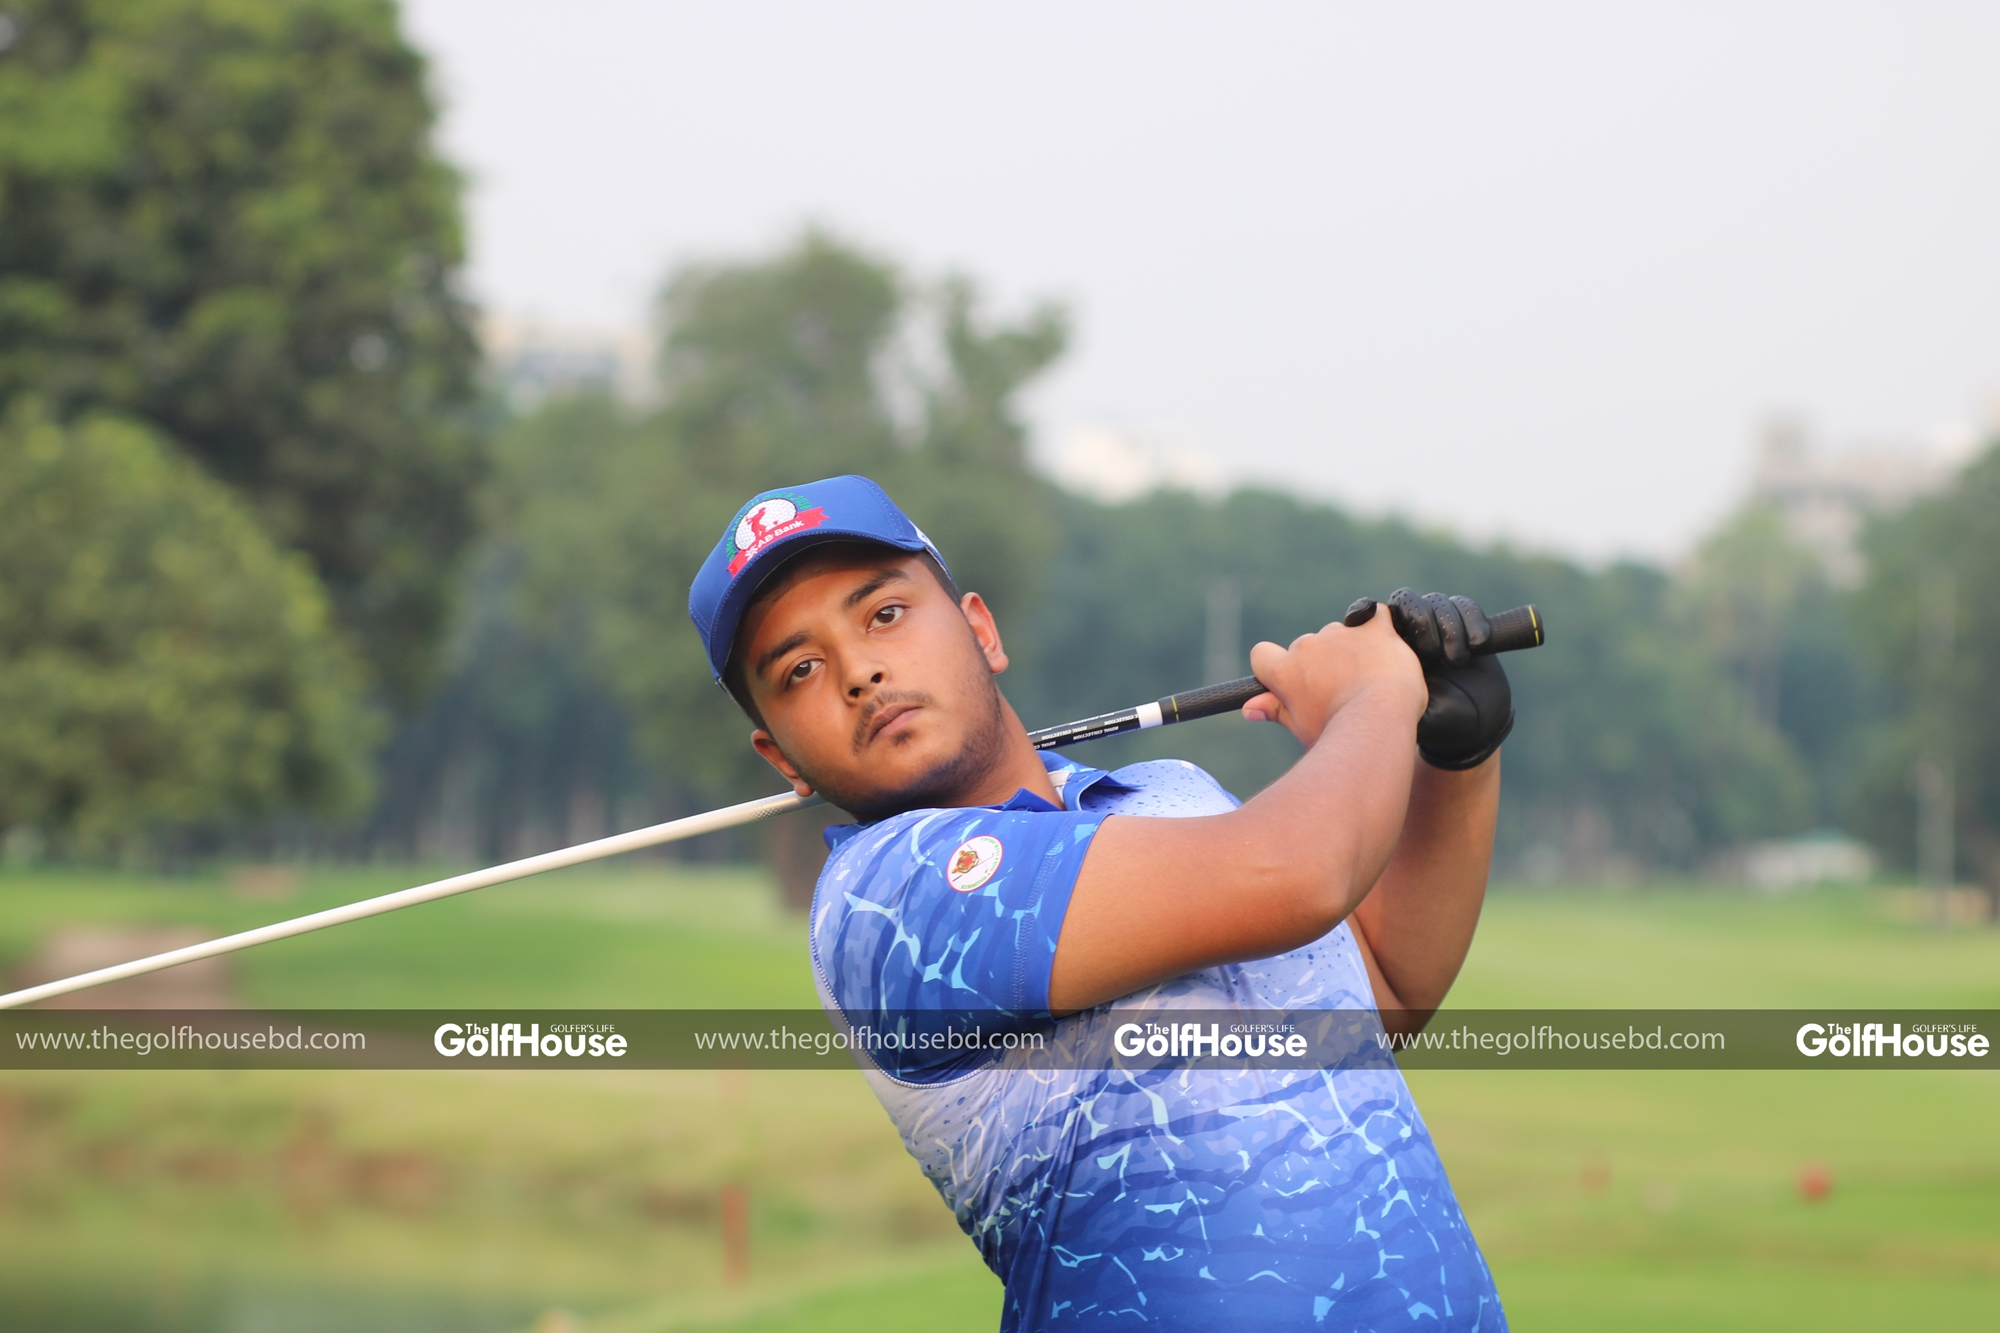 Samaul_Islam_is_an_amateur_golfer_at_the_Kurmitola_Golf_Club._Like_many_other_amateur_golfers_Samaul_was_introduced_to_the_game_by_his_father_at_a_very_early_age_and_took_an_instant_liking_to_the_game_and_the_other_aspects_that_golf_brings_with _t.